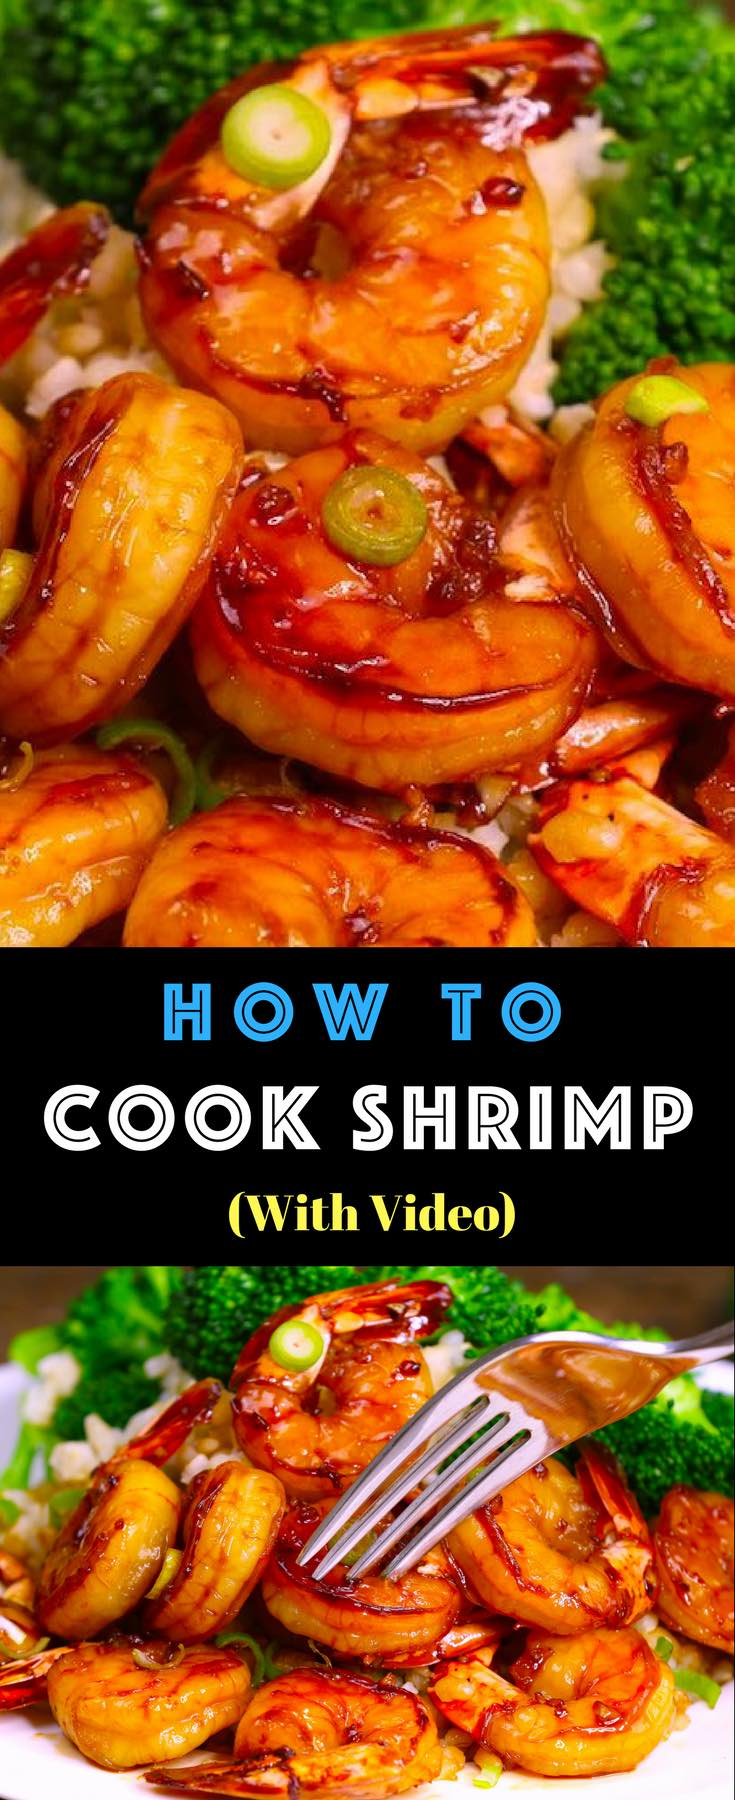 It's easy to learn how to cook shrimp with shrimp recipes being so quick and easy to prepare, it's no wonder they're a popular weeknight dinner option. Learn all the tips and secrets for getting the best results when cooking shrimp! #easyShrimpRecipe